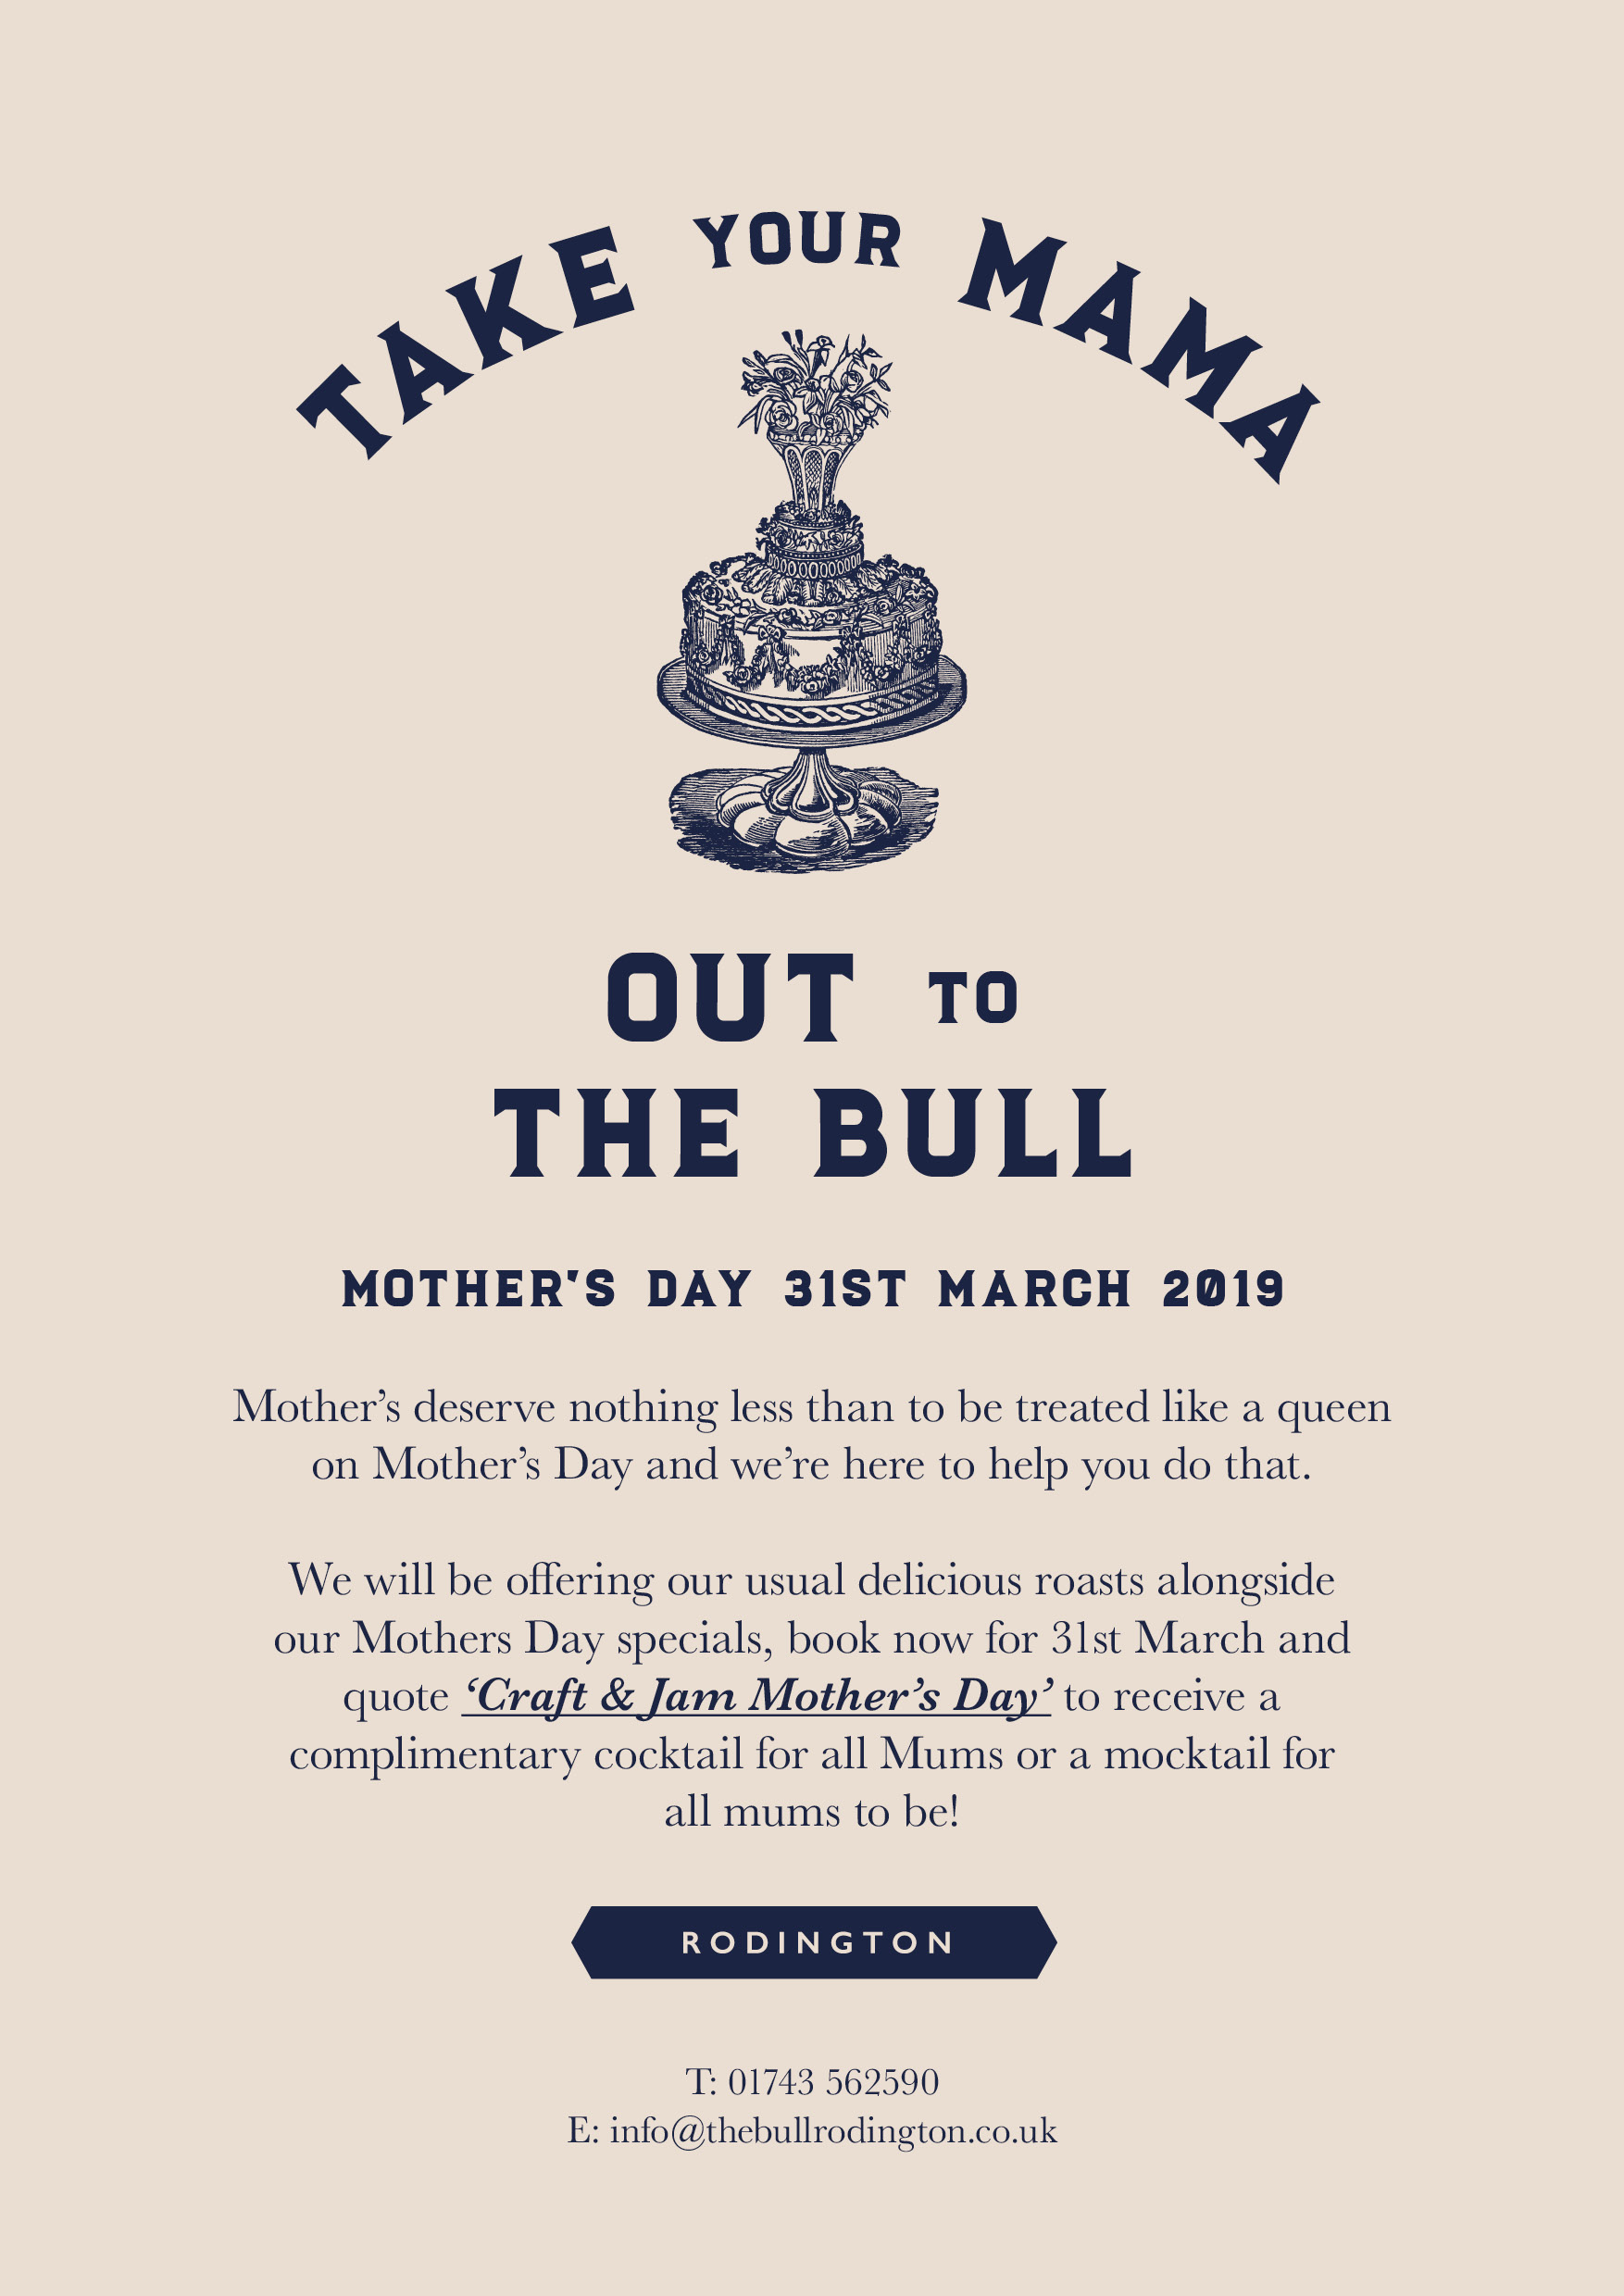 Mother's Day 31st March - The Bull